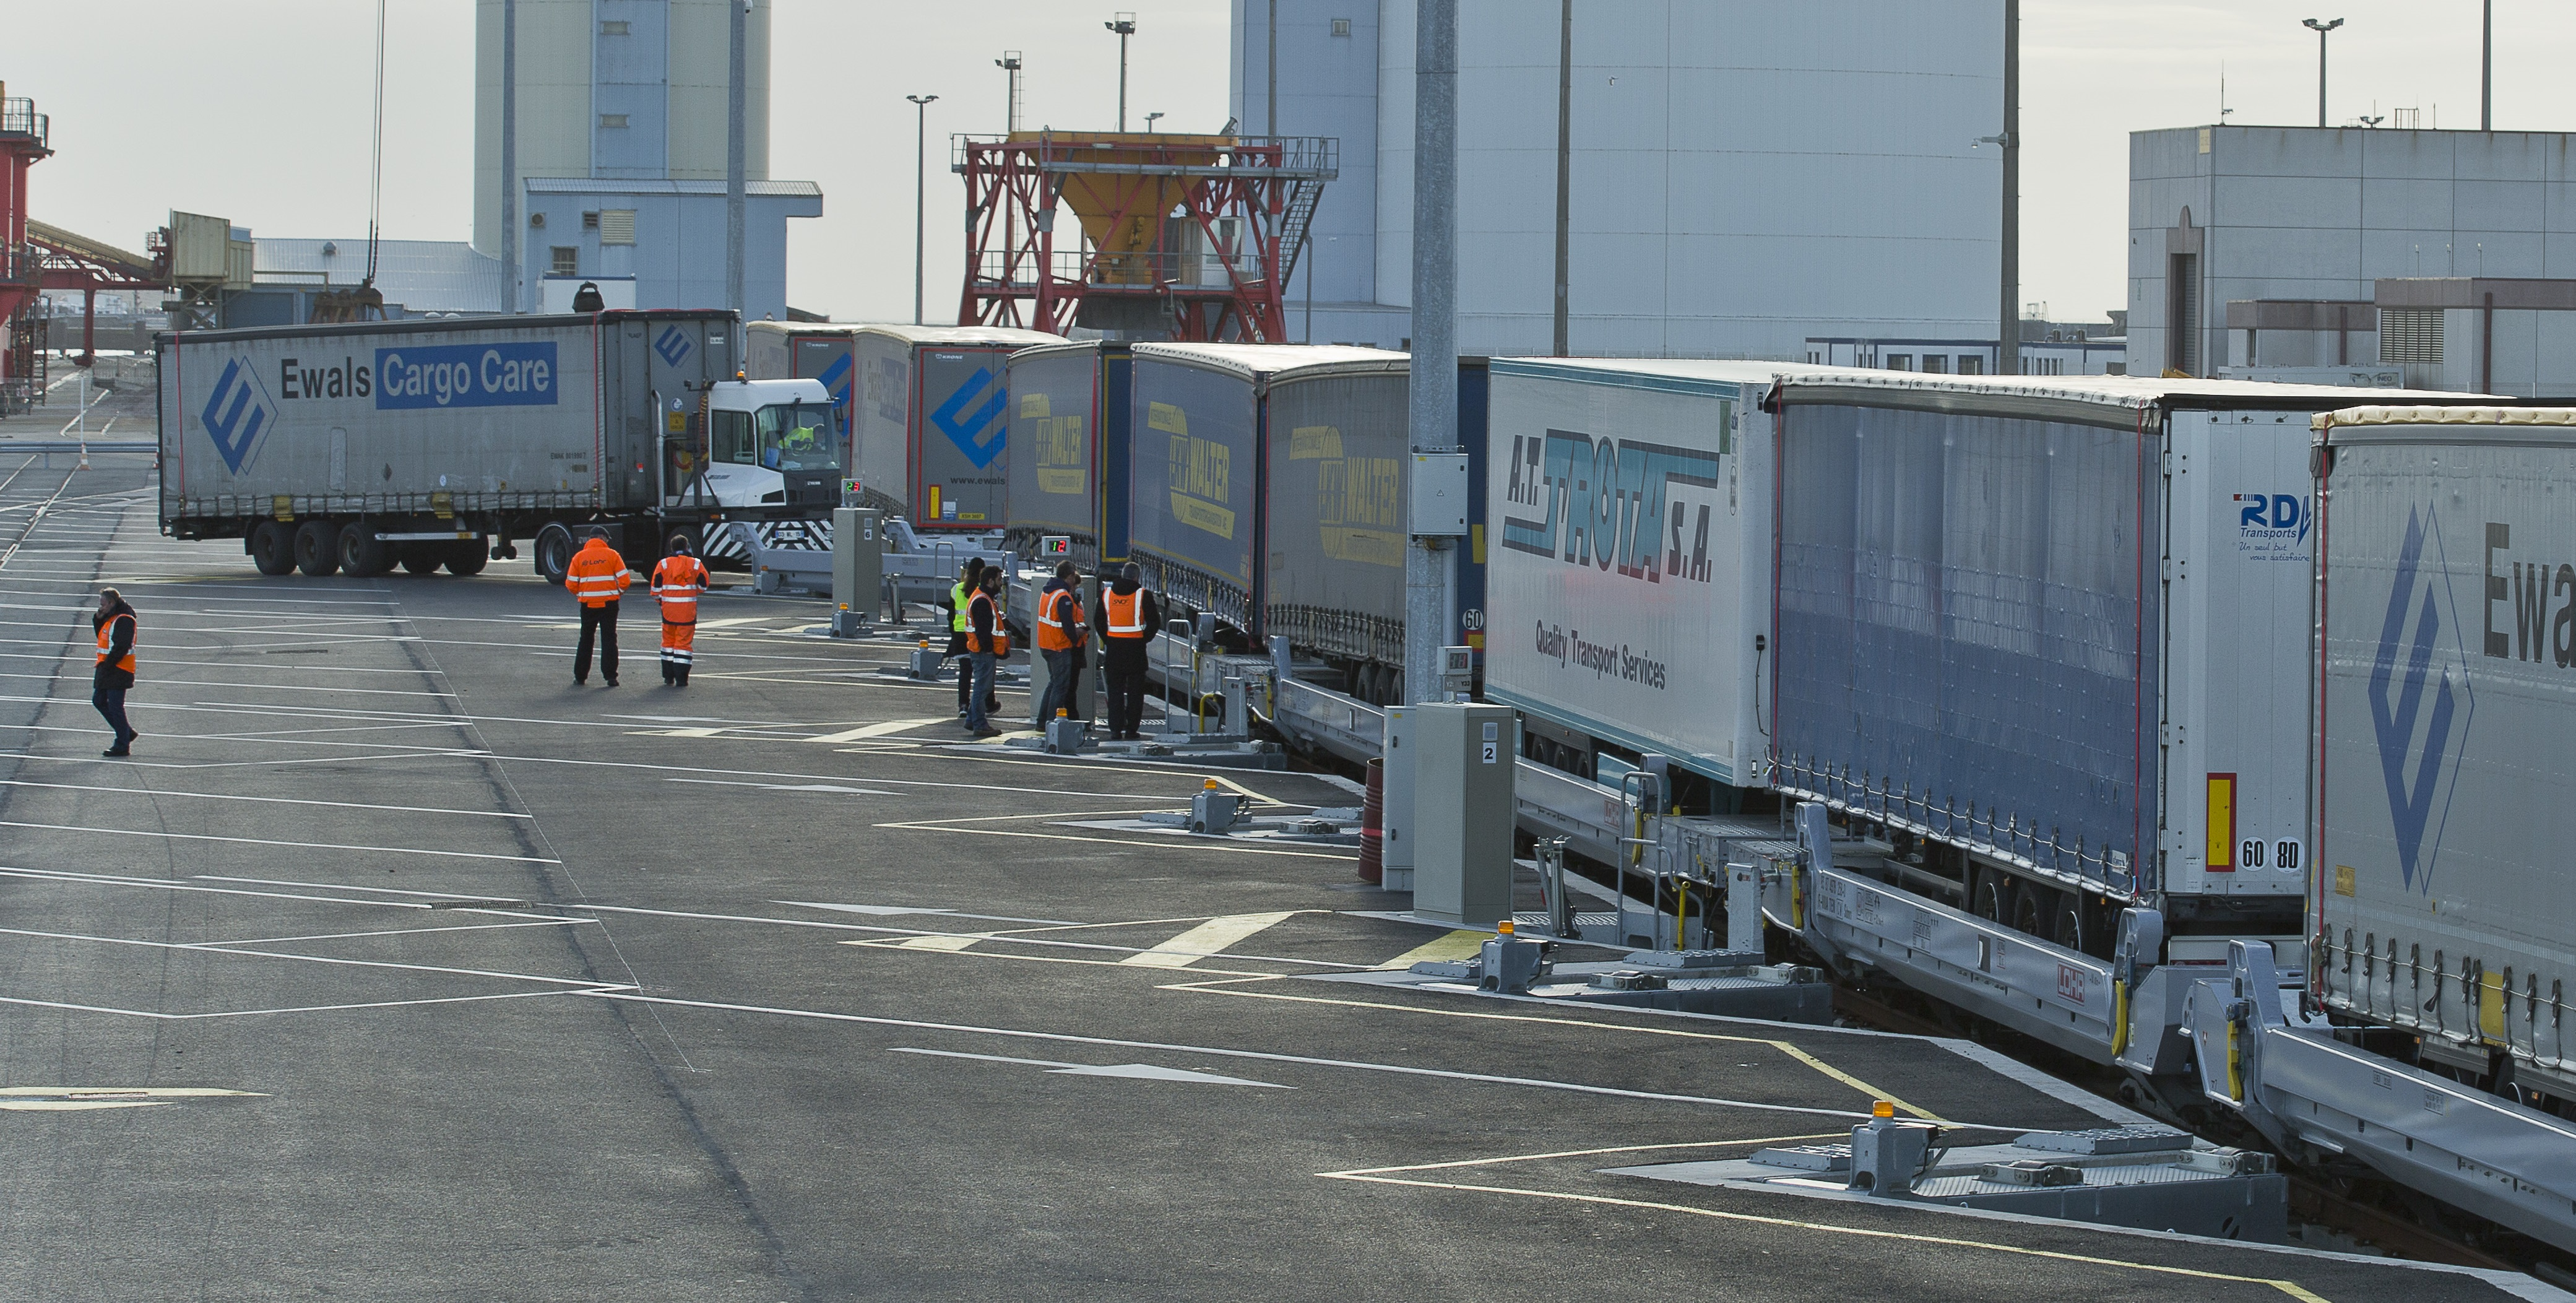 VIIA transported 6,500 trailers between Calais and Le Boulou last year. (Photo: M.Guilbert)